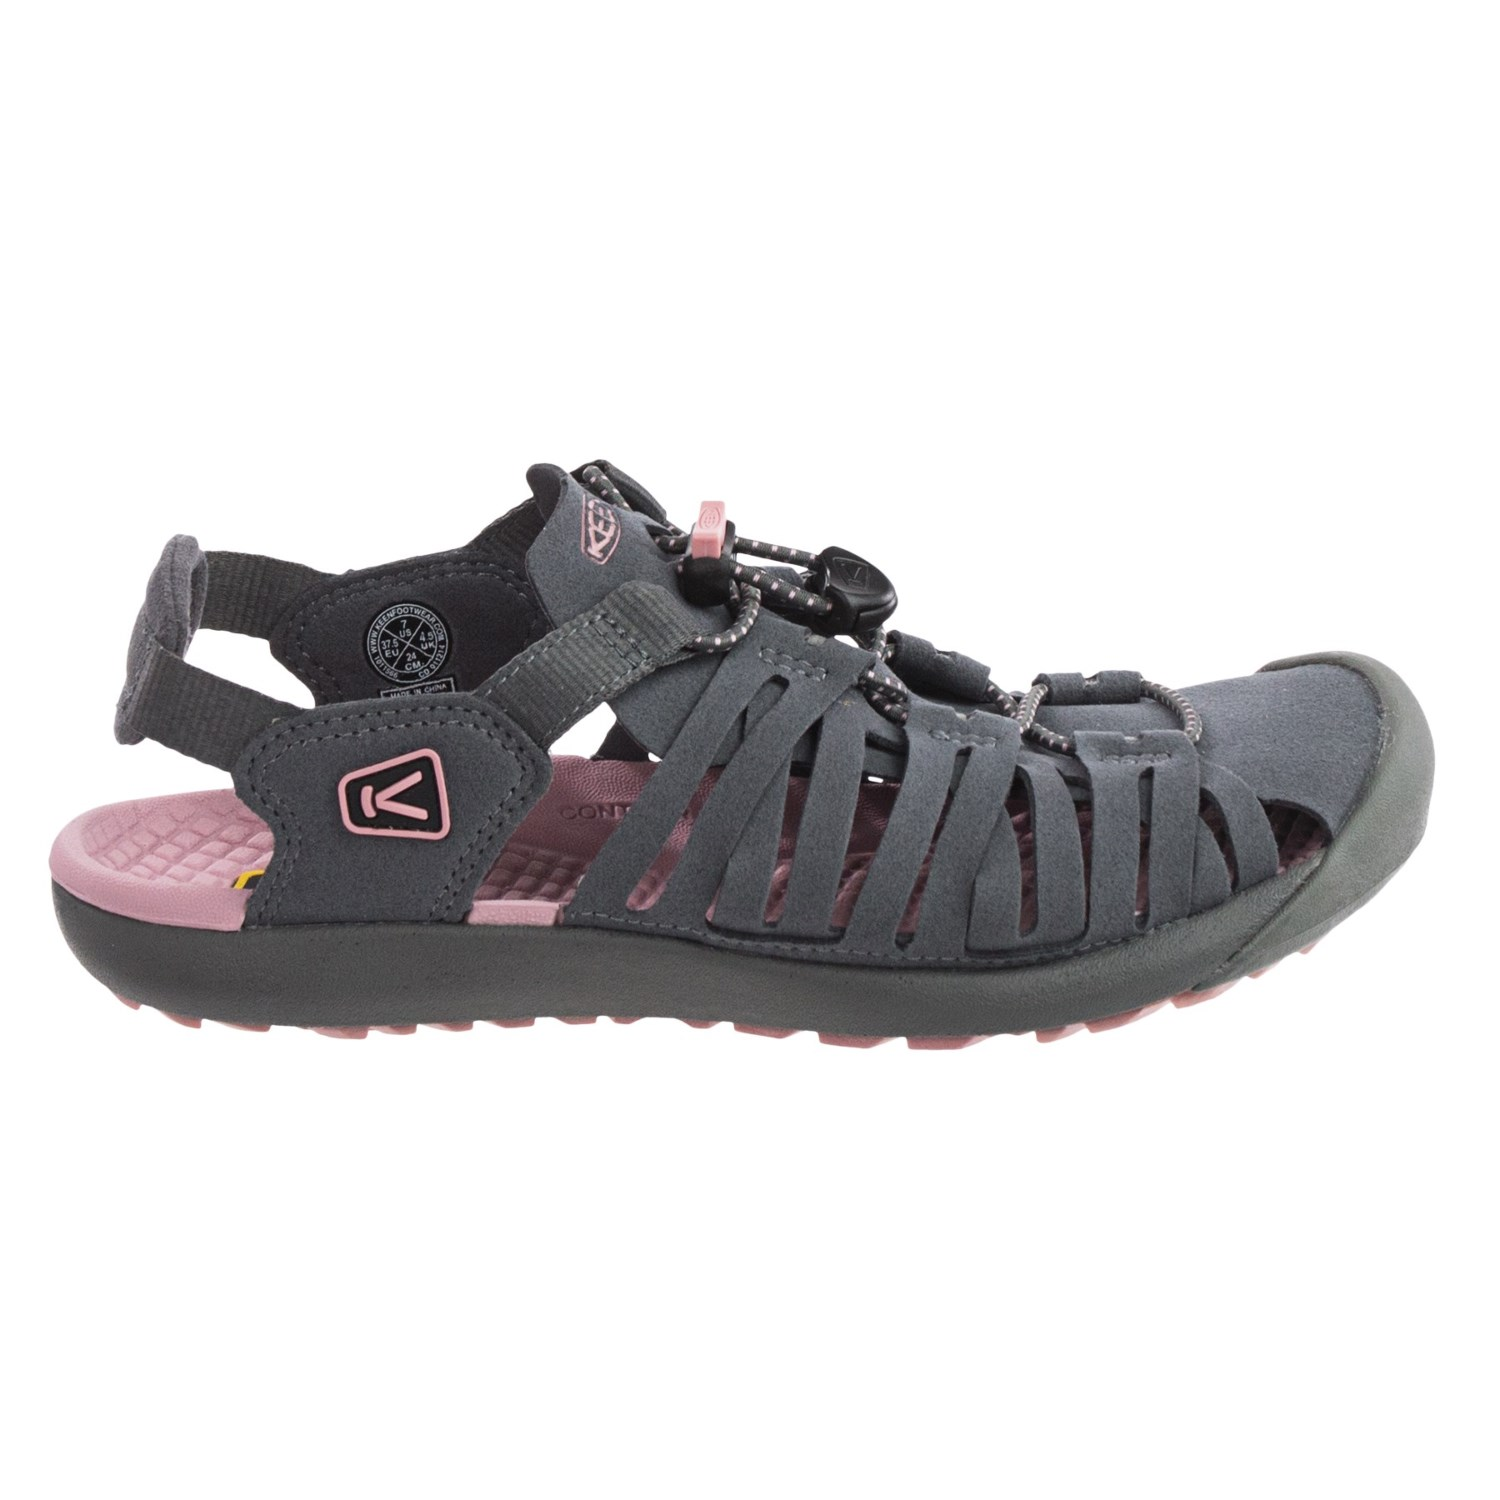 Amazing Keen Sandals Womenu0026#39;s Clearwater ~ Keens Sandals